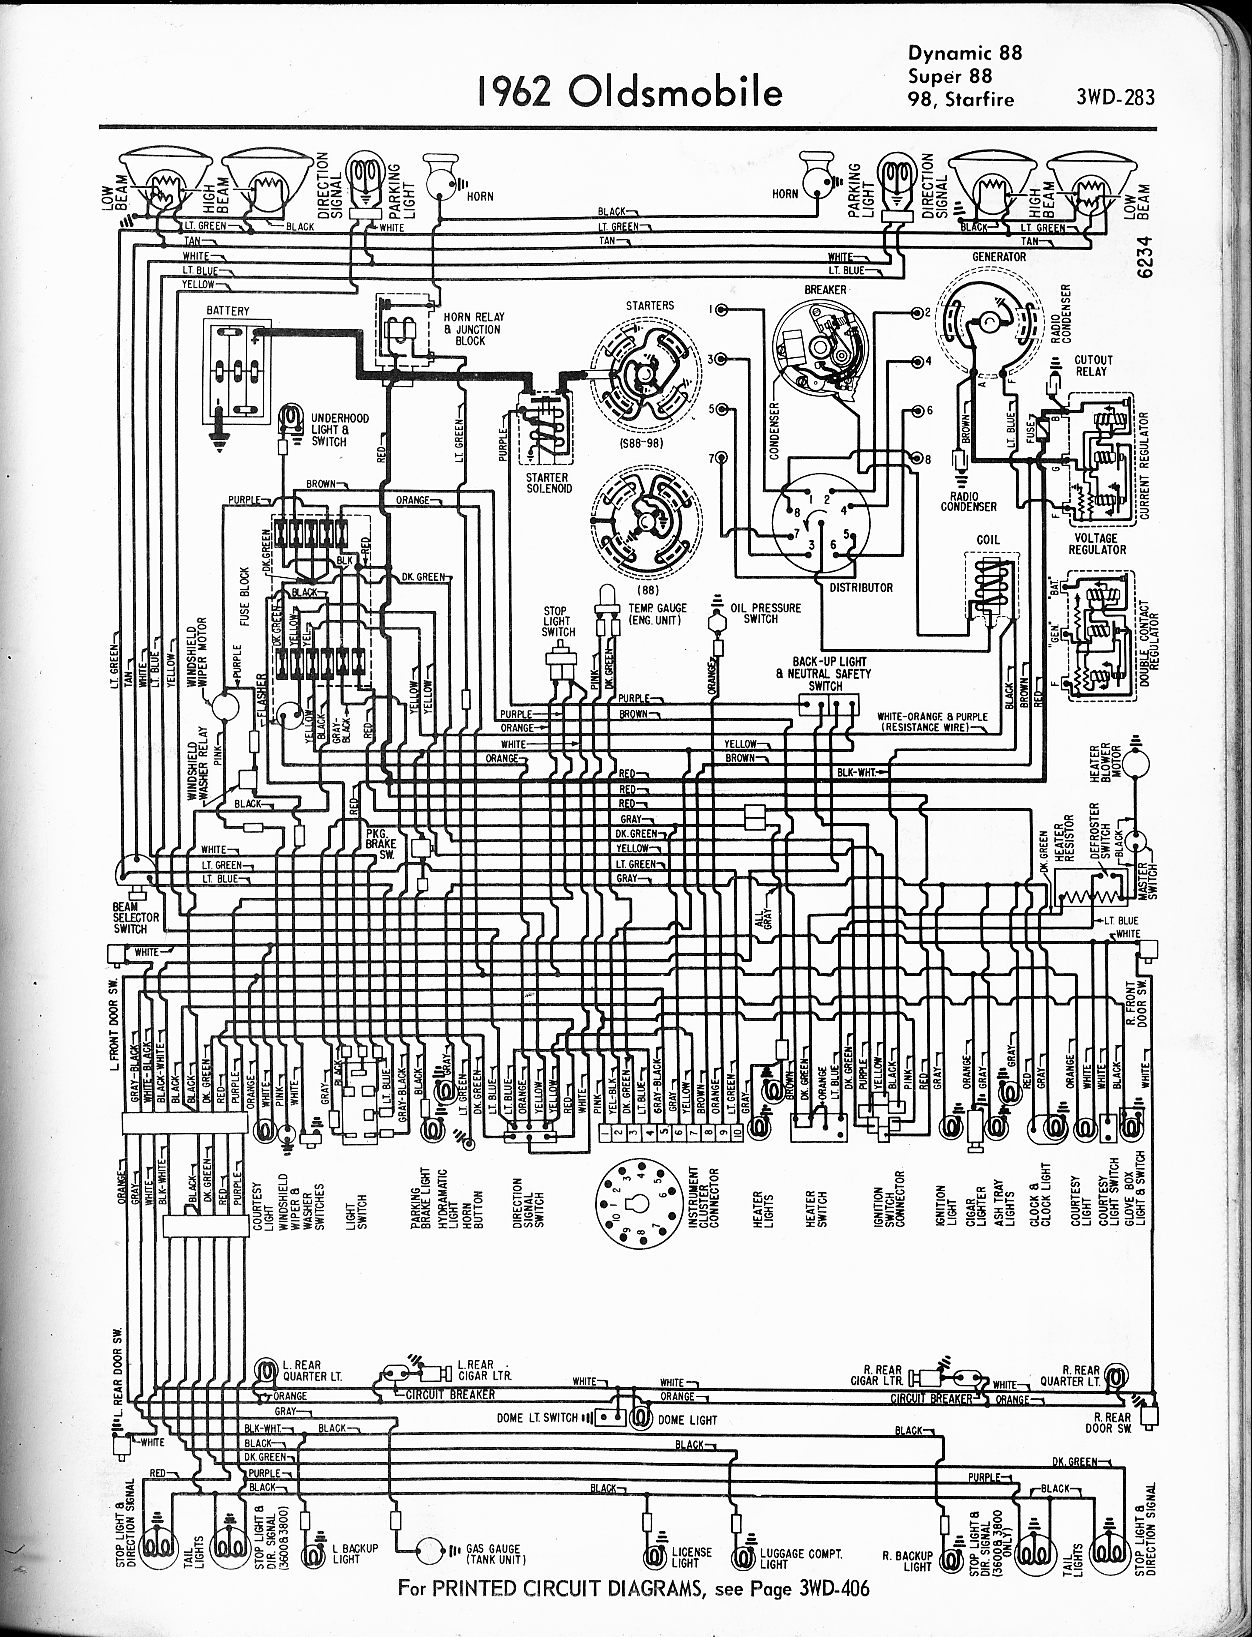 1955 Oldsmobile Wiring Diagram Auto Electrical 94 Vmax 1200